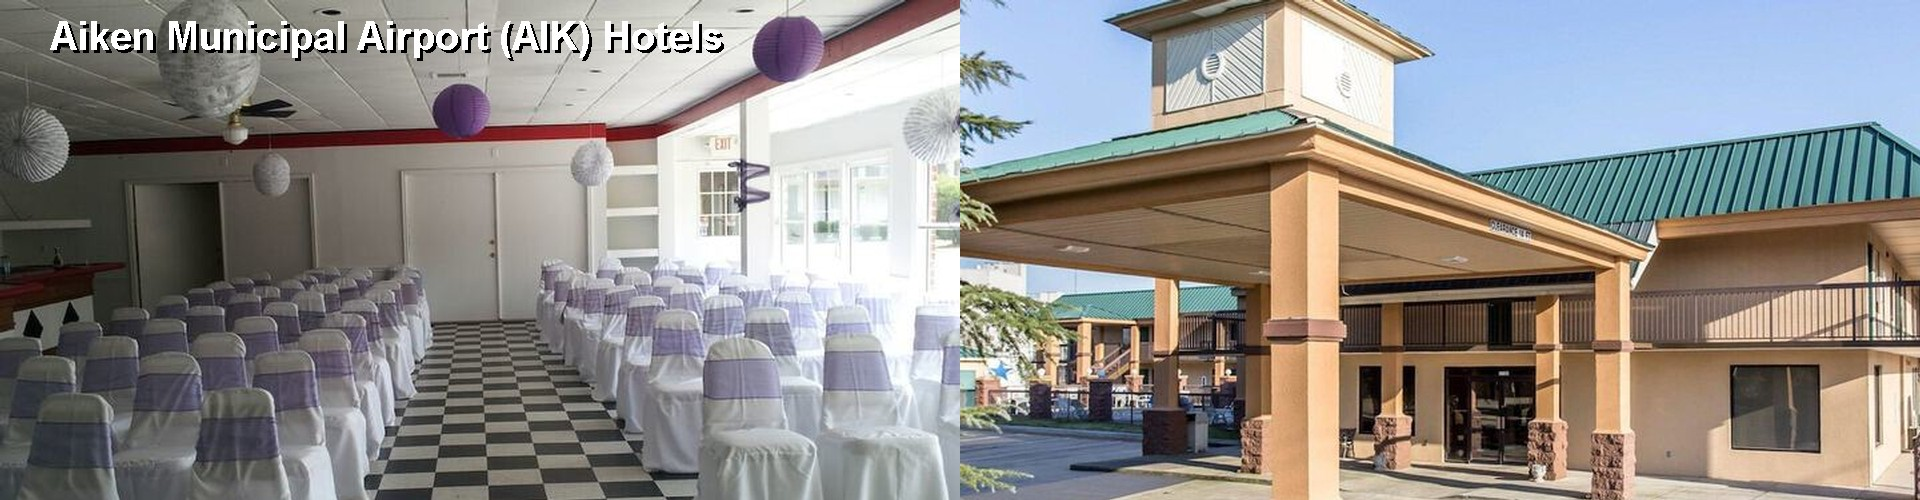 3 Best Hotels near Aiken Municipal Airport (AIK)